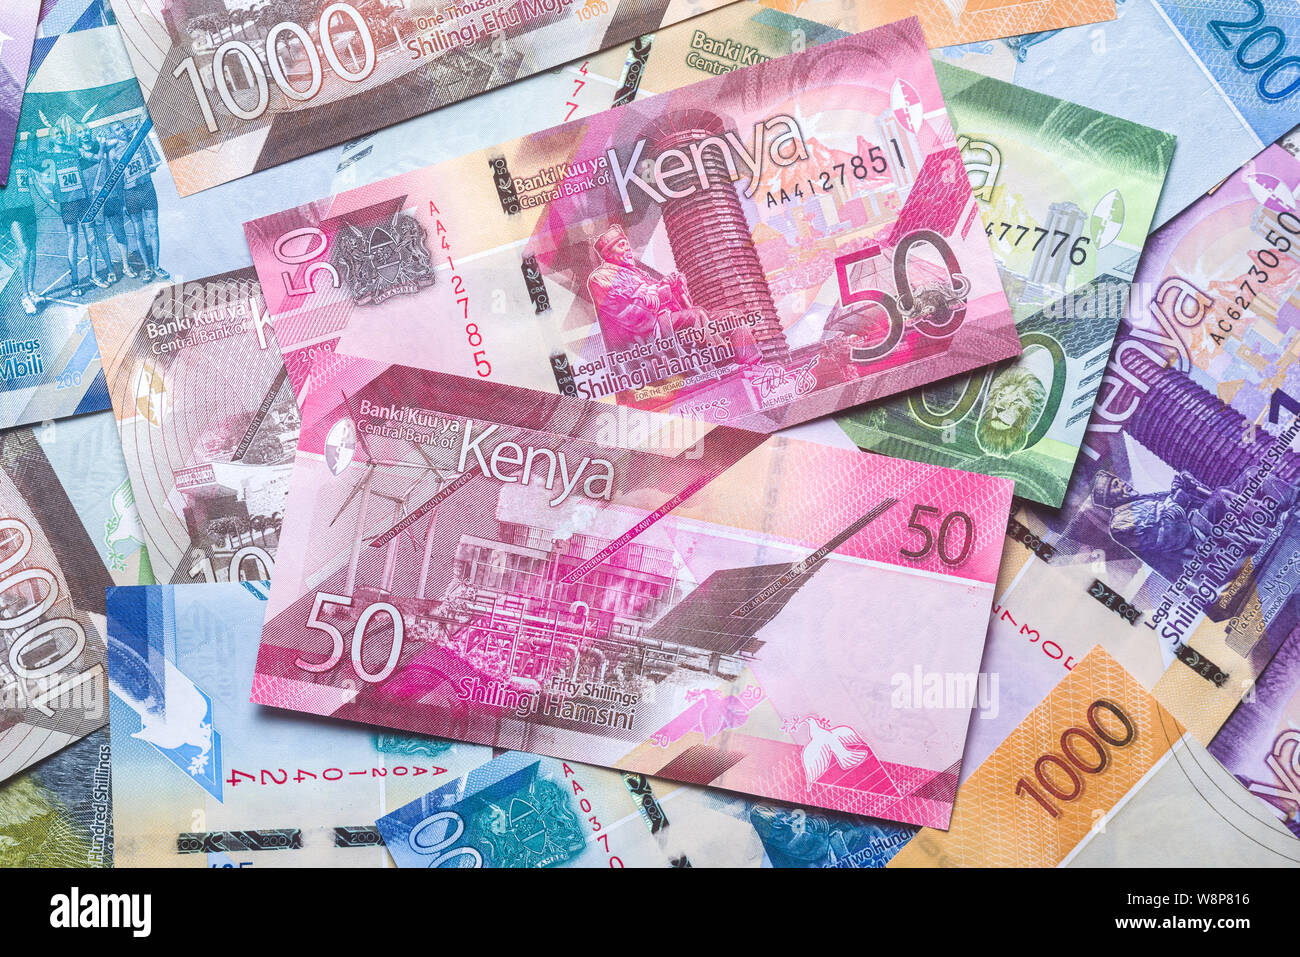 New 2019 Kenyan 50 Shilling bank notes on top of other bank notes in various denominations Stock Photo